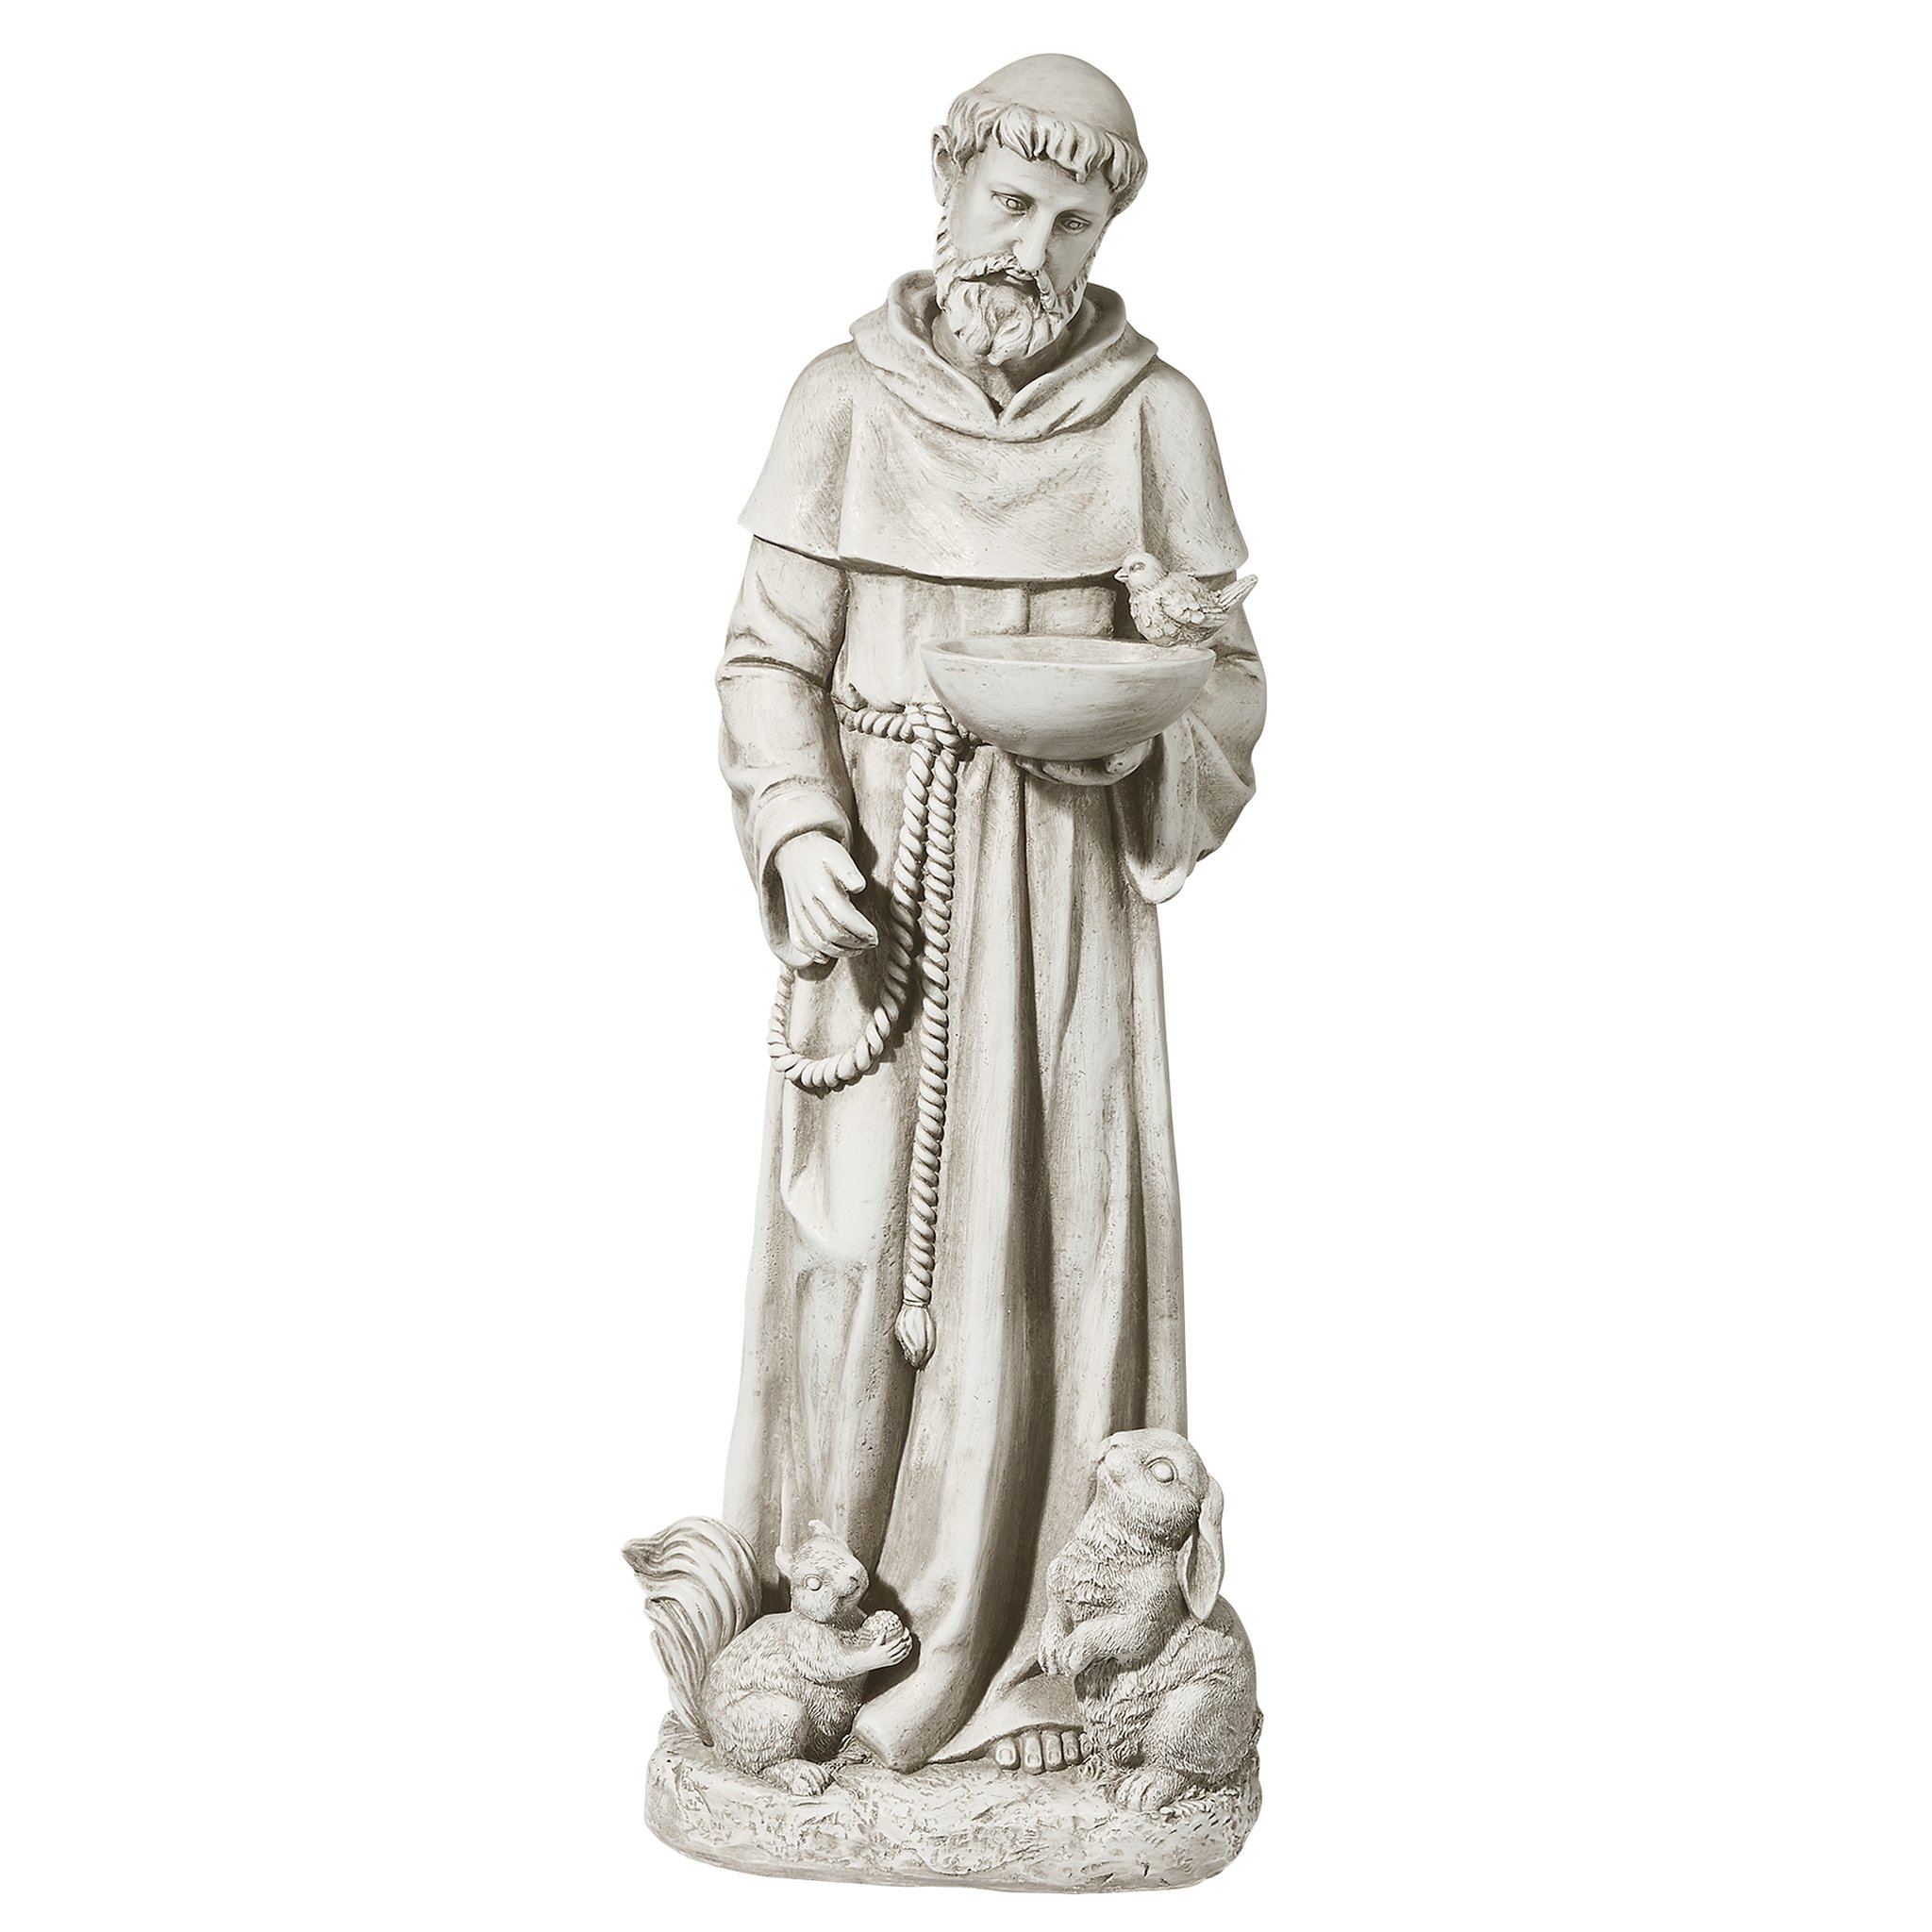 Design Toscano Nature's Nurturer, St. Francis Sculpture, Medium